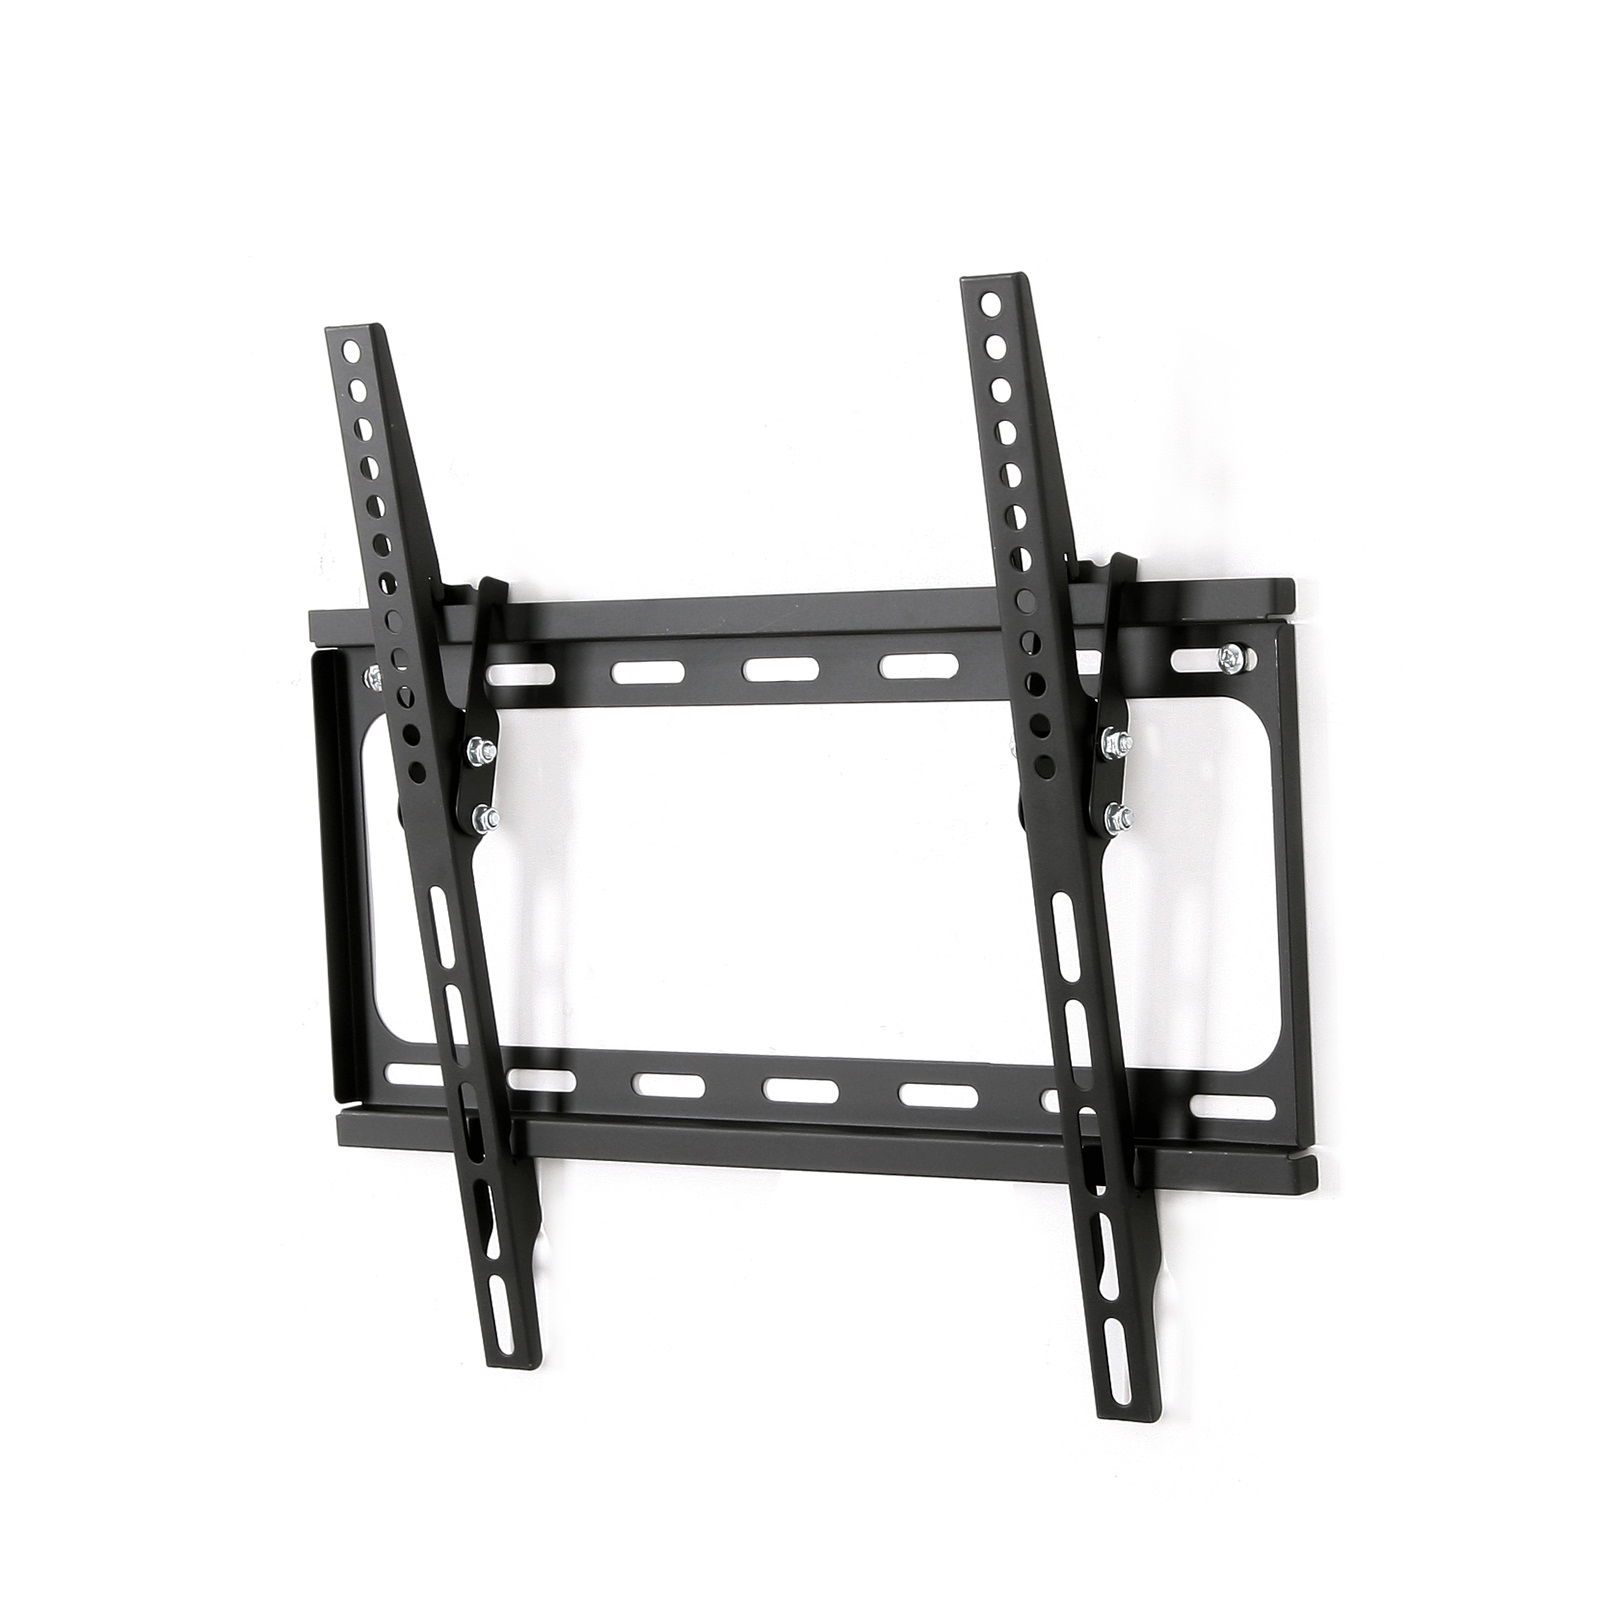 FLEXIMOUNTS T012 Tilt TV Wall Mount Bracket fits 26-55 inch TV 4K Plasma flat screen with 66 lbs weight capacity